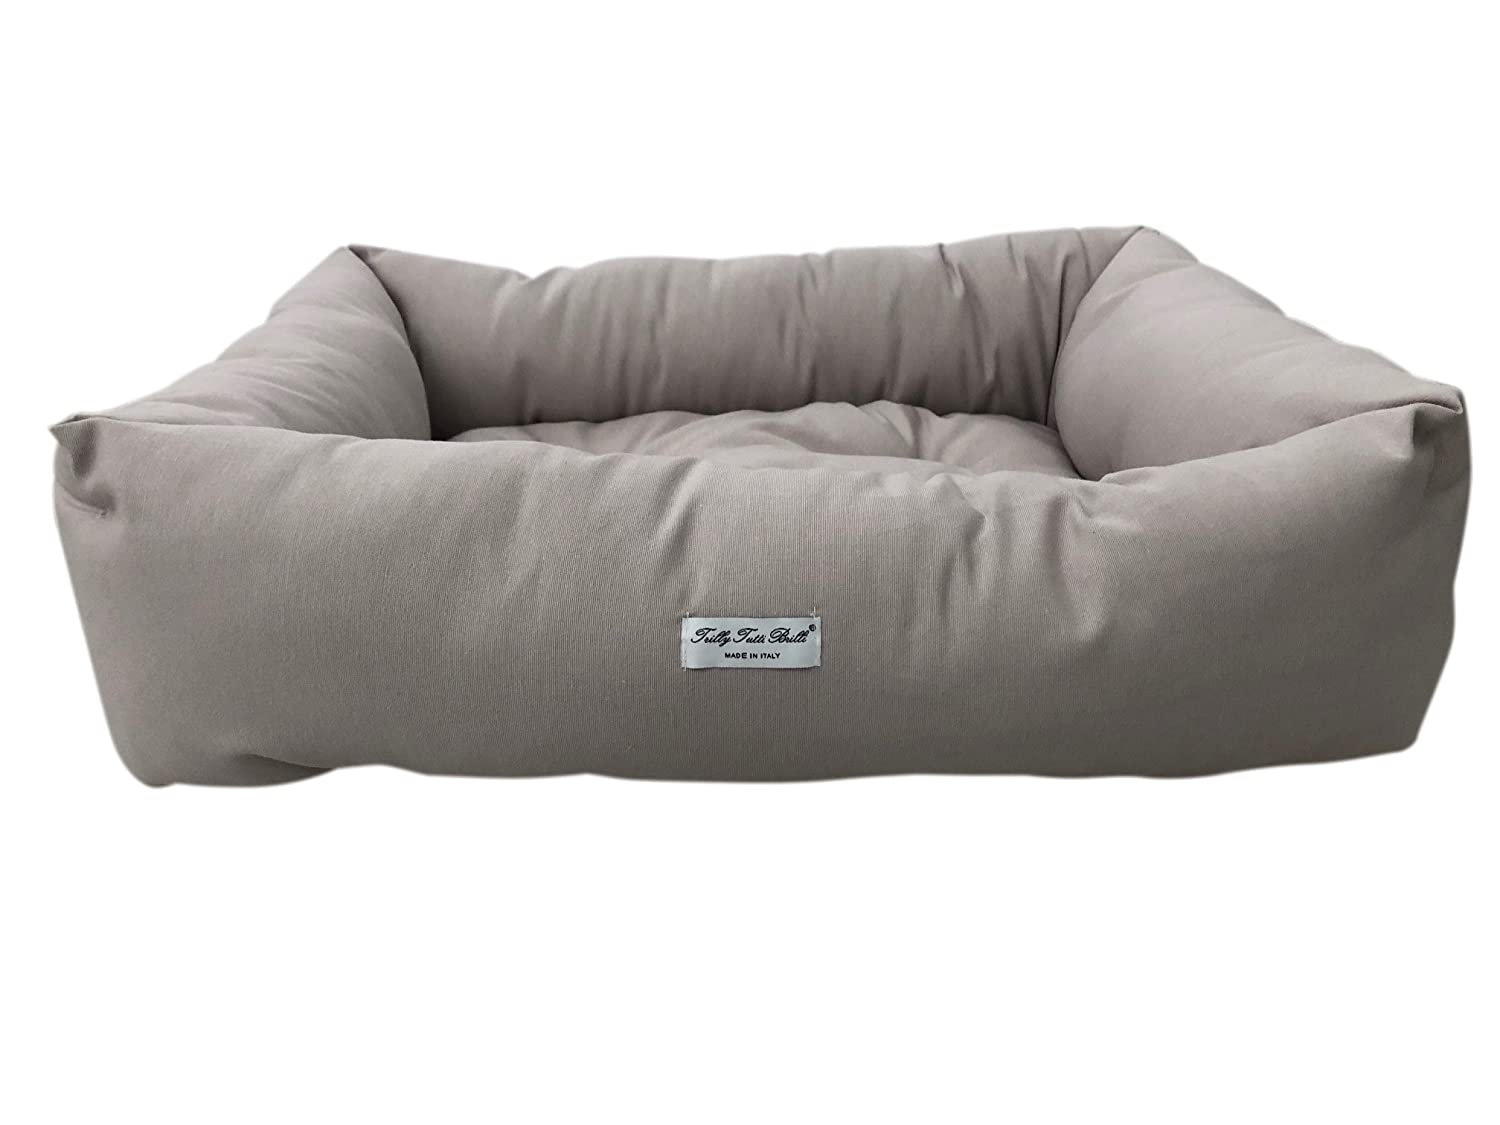 Trilly tutti Brilli Akane Dog's Bed, Light Grey, Number 70